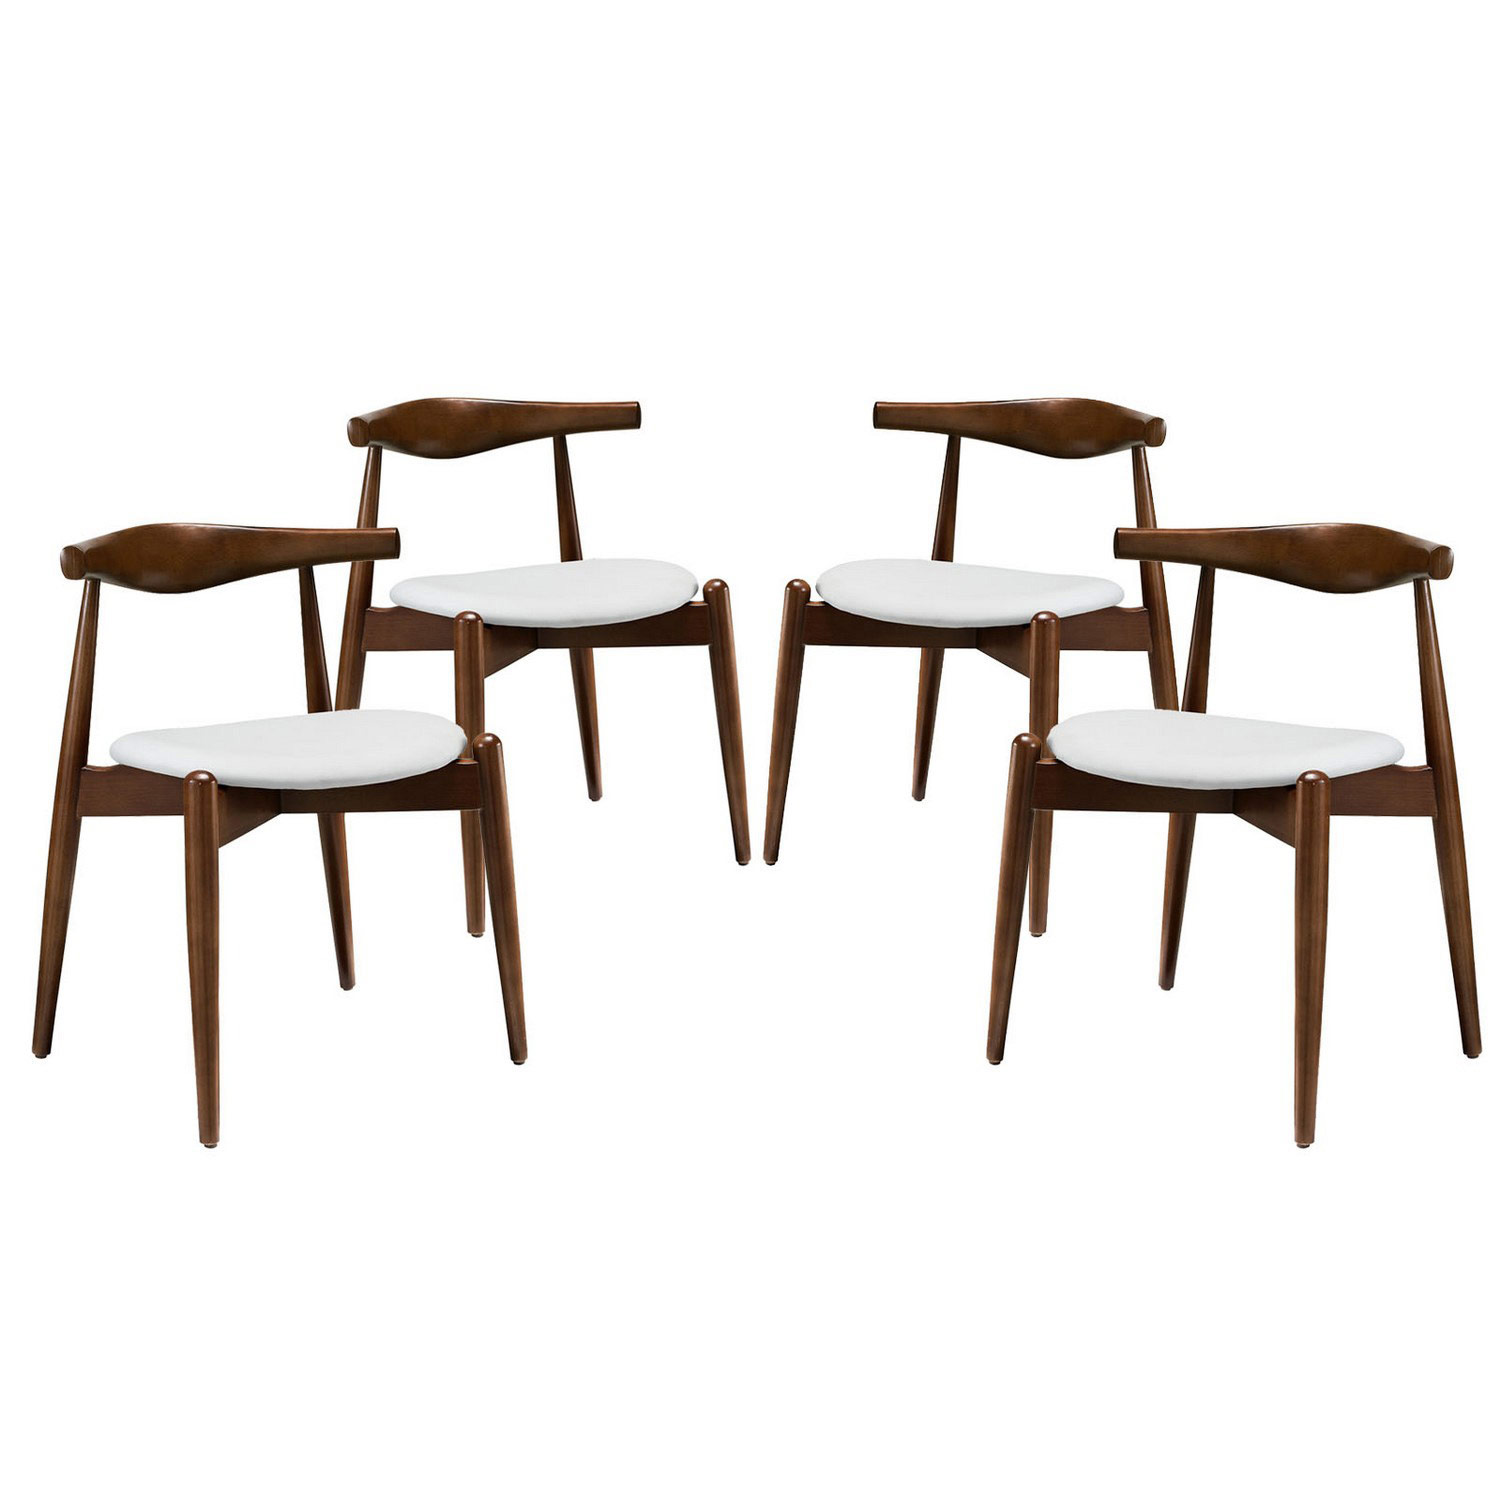 Modway Stalwart 4PC Dining Side Chair Set - Dark Walnut/White